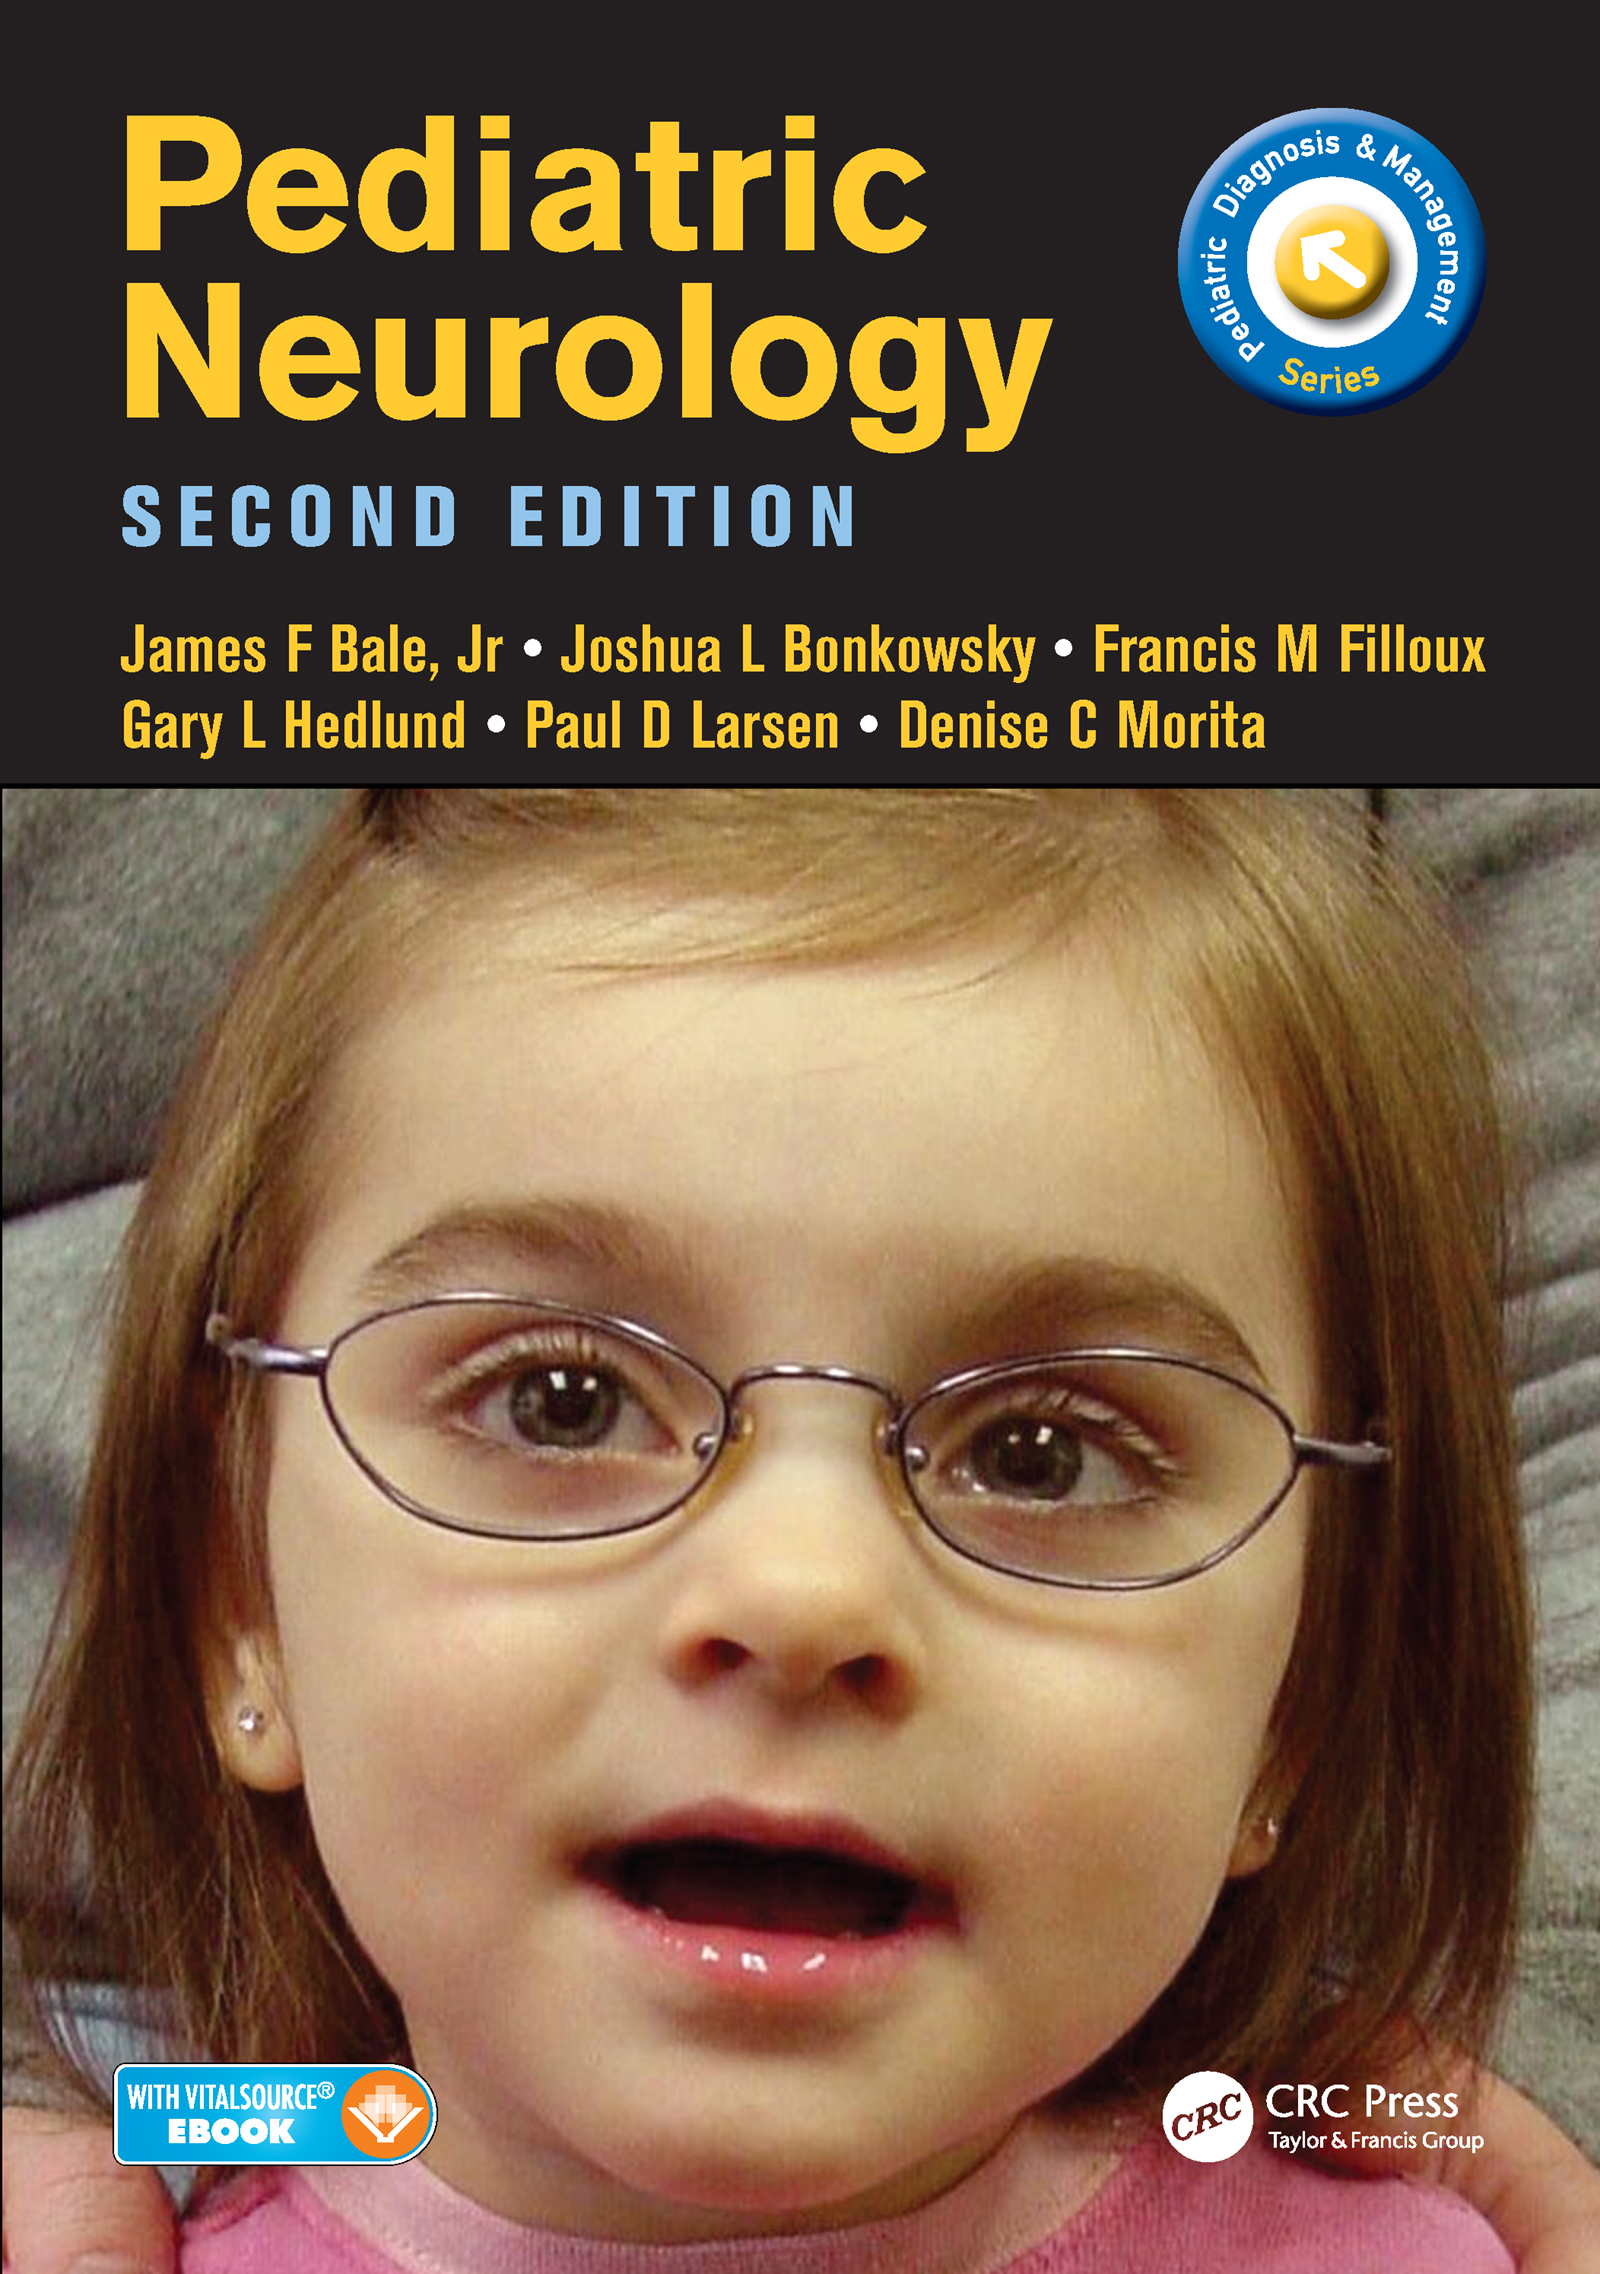 Pediatric Neurology, Second Edition book cover